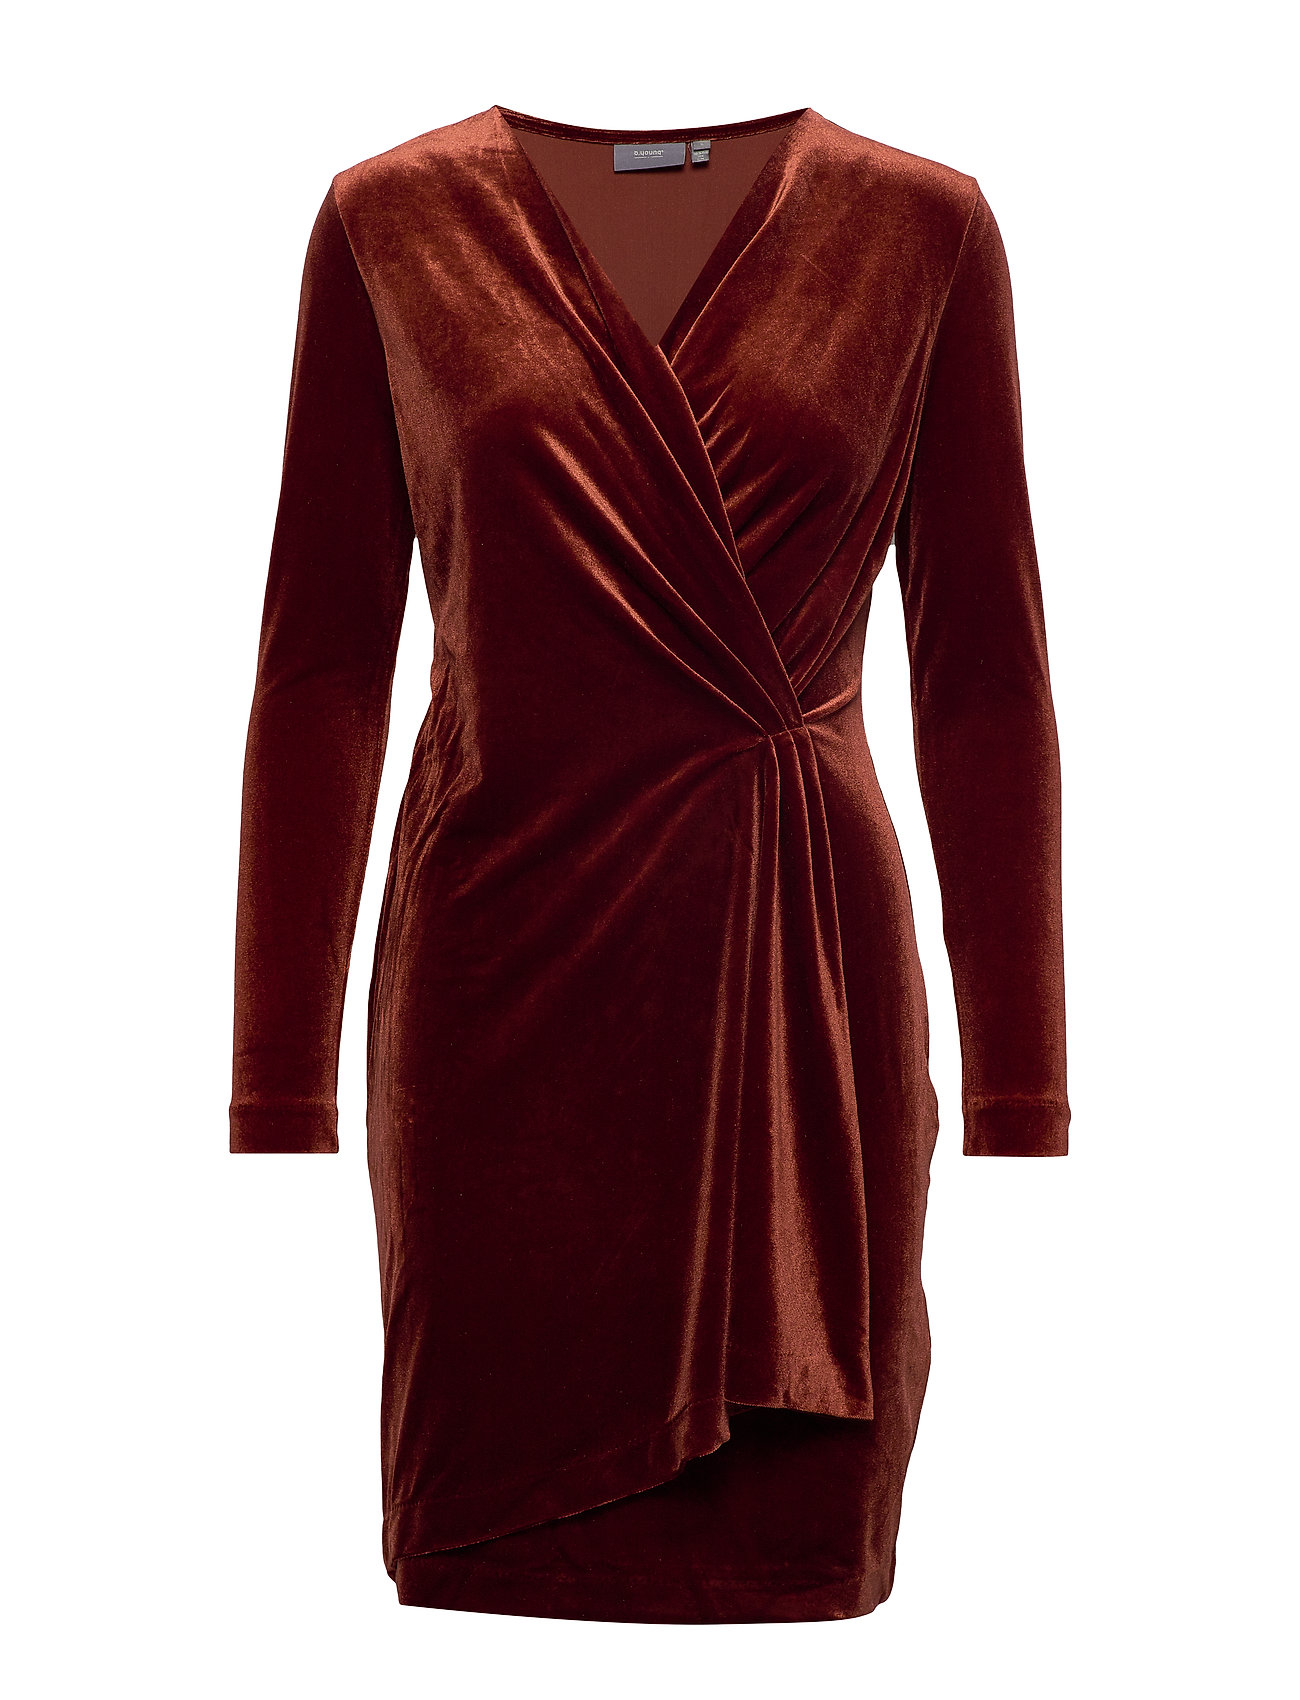 b.young BYPERLINA DRESS 2 - - DARK COPPER